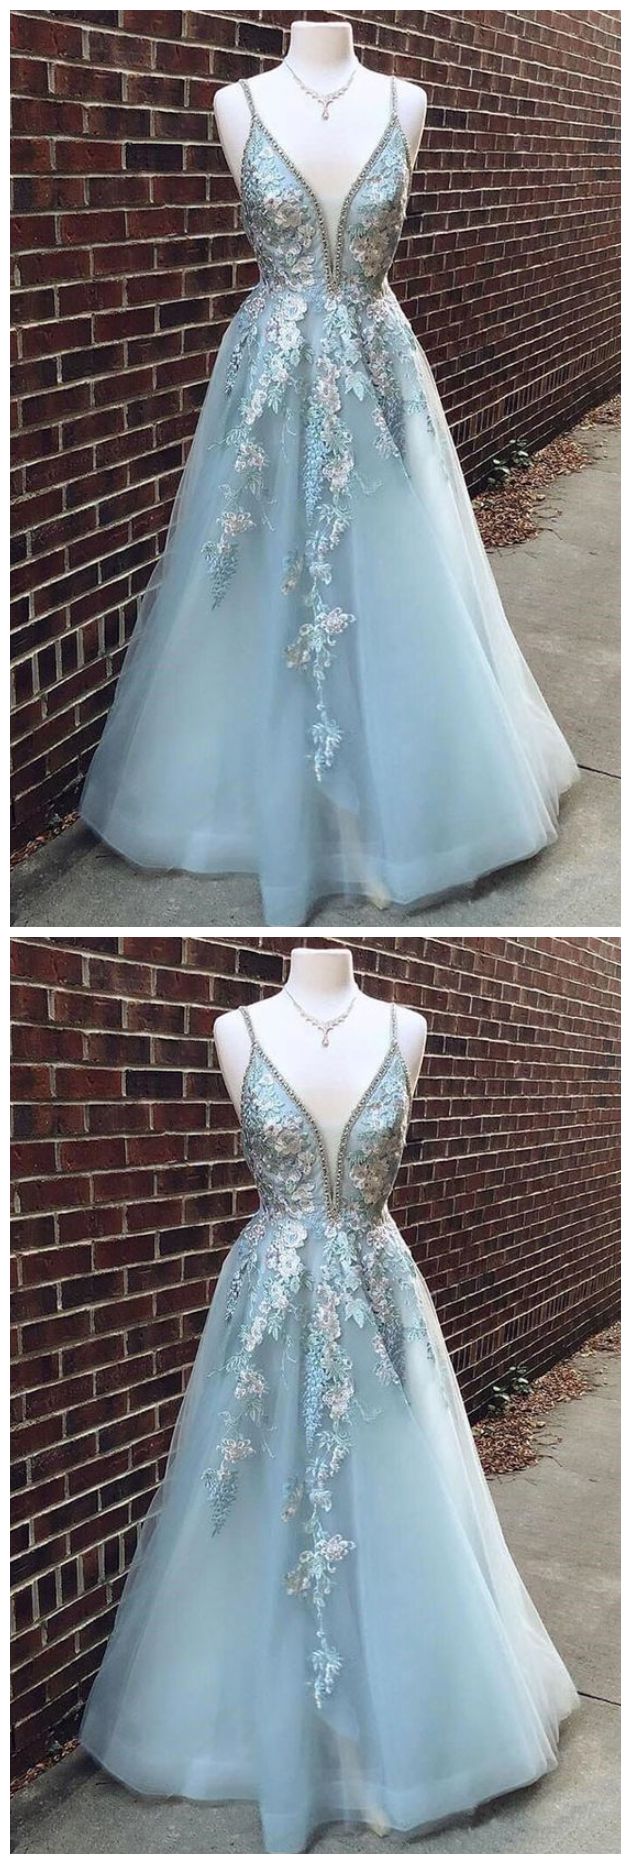 Blue Prom Dress with Appliques, Long Prom Dress for Teens